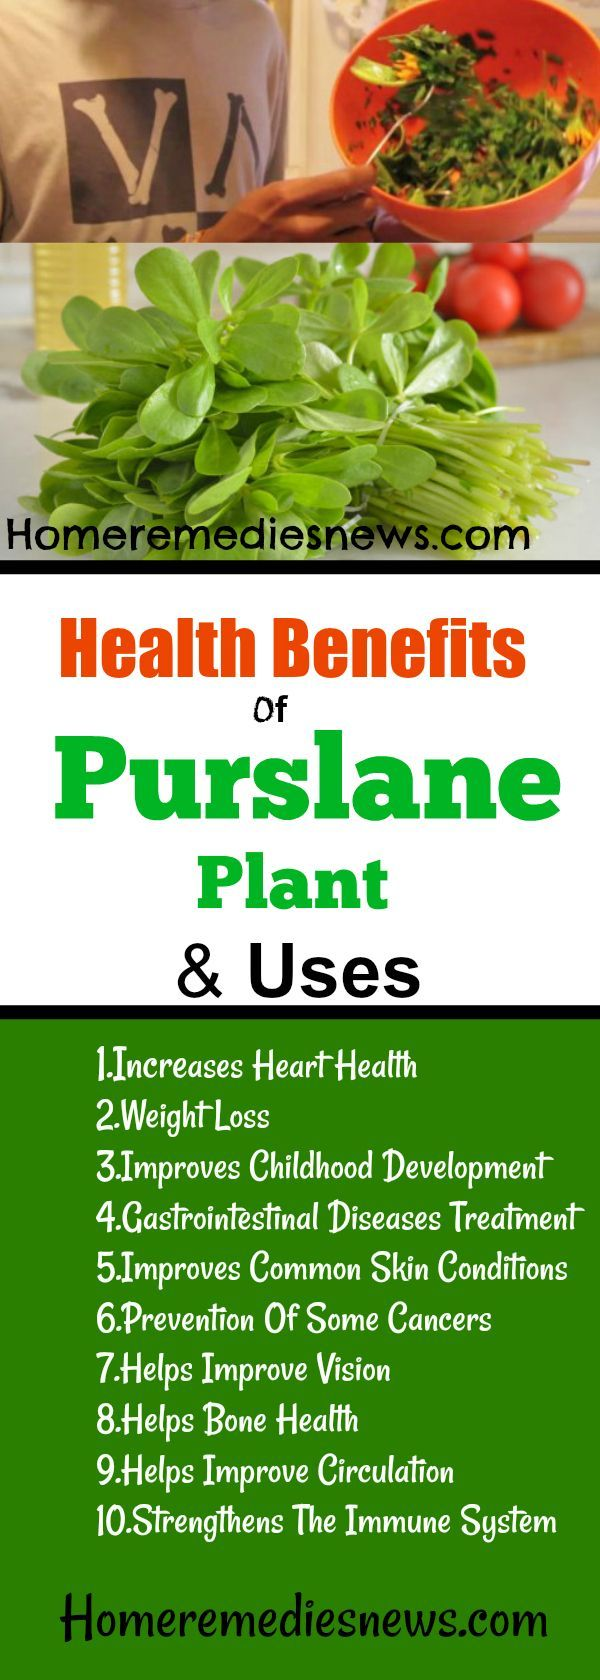 10 Best Health Benefits Of Purslane Plant And Uses - Discover here the best purslane plant health benefits and uses. Purslane can be used at home for skin care, weight loss, slave, bone health and as a salad.It is believed that the higher levels of Omega 3 fatty acids in the Purslane plane can help small children with early development.   1.Increases Heart Health 2.Weight Loss 3.Improves Childhood Development  4.Gastrointestinal Diseases Treatment 5.Improves Common Skin Conditions…